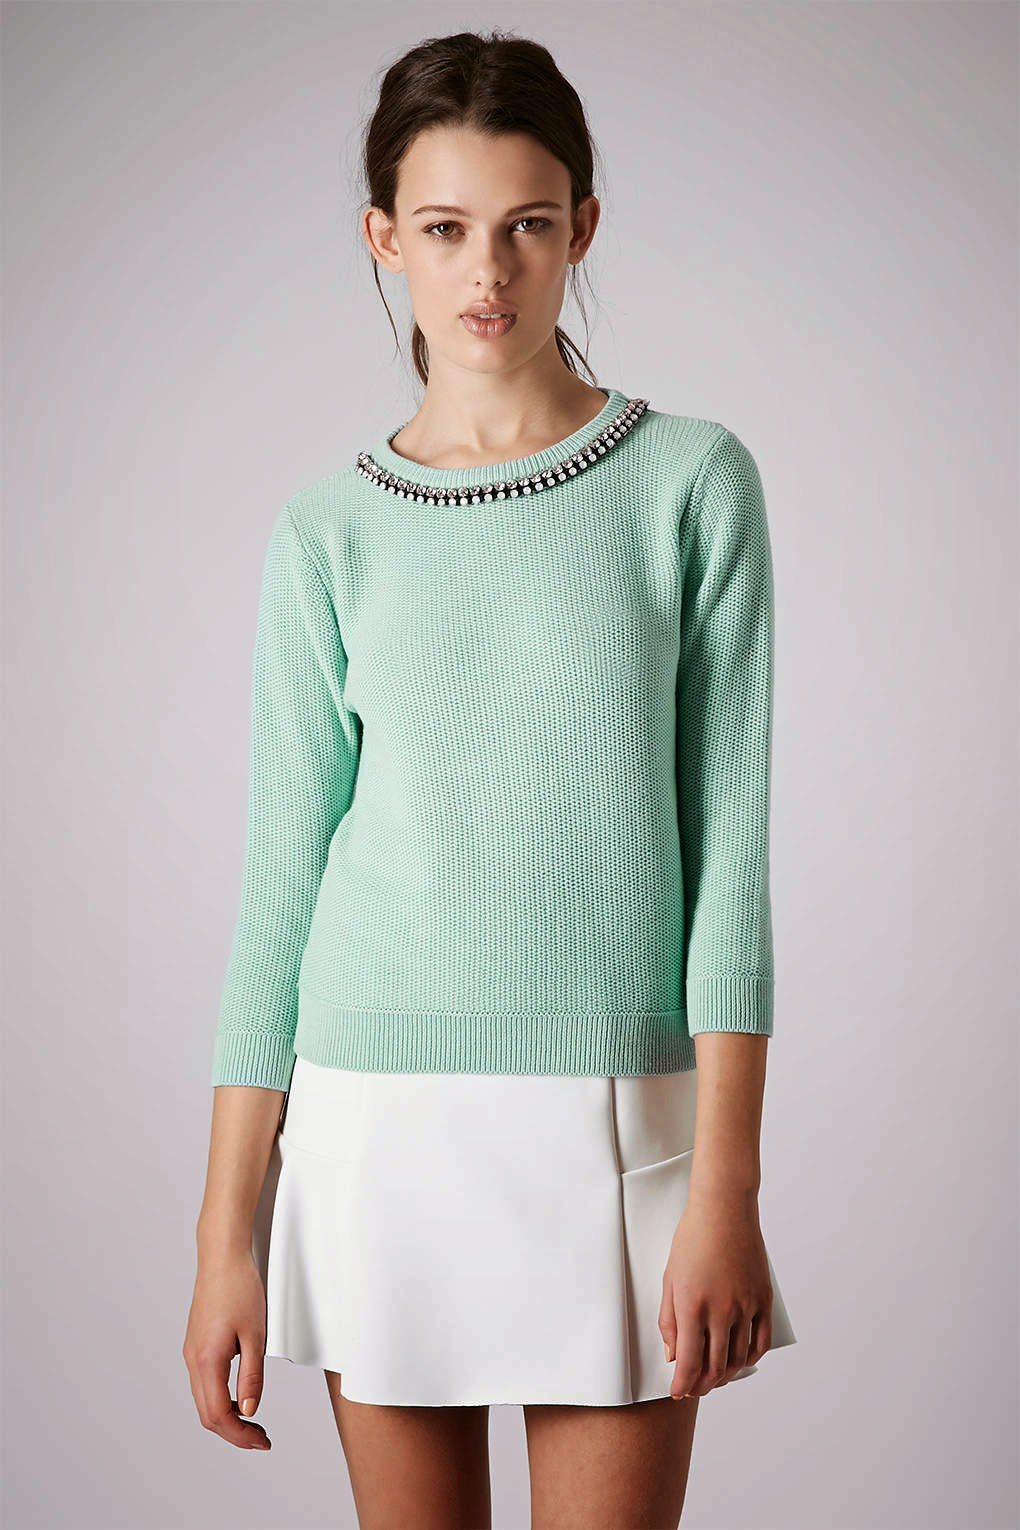 topshop mint jumper